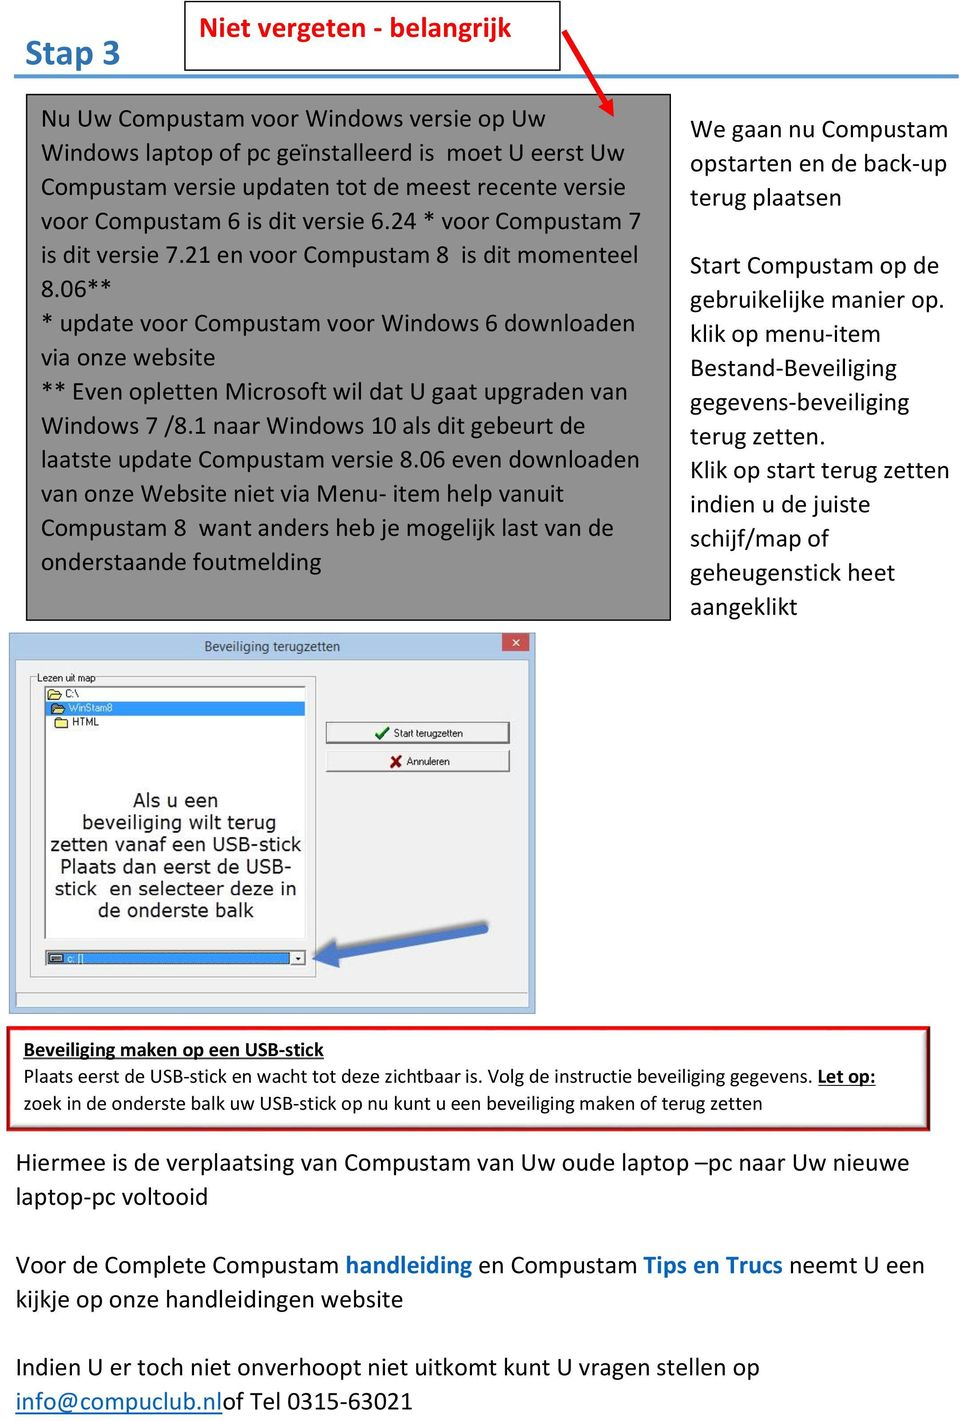 06** * update voor Compustam voor Windows 6 downloaden via onze website ** Even opletten Microsoft wil dat U gaat upgraden van Windows 7 /8.